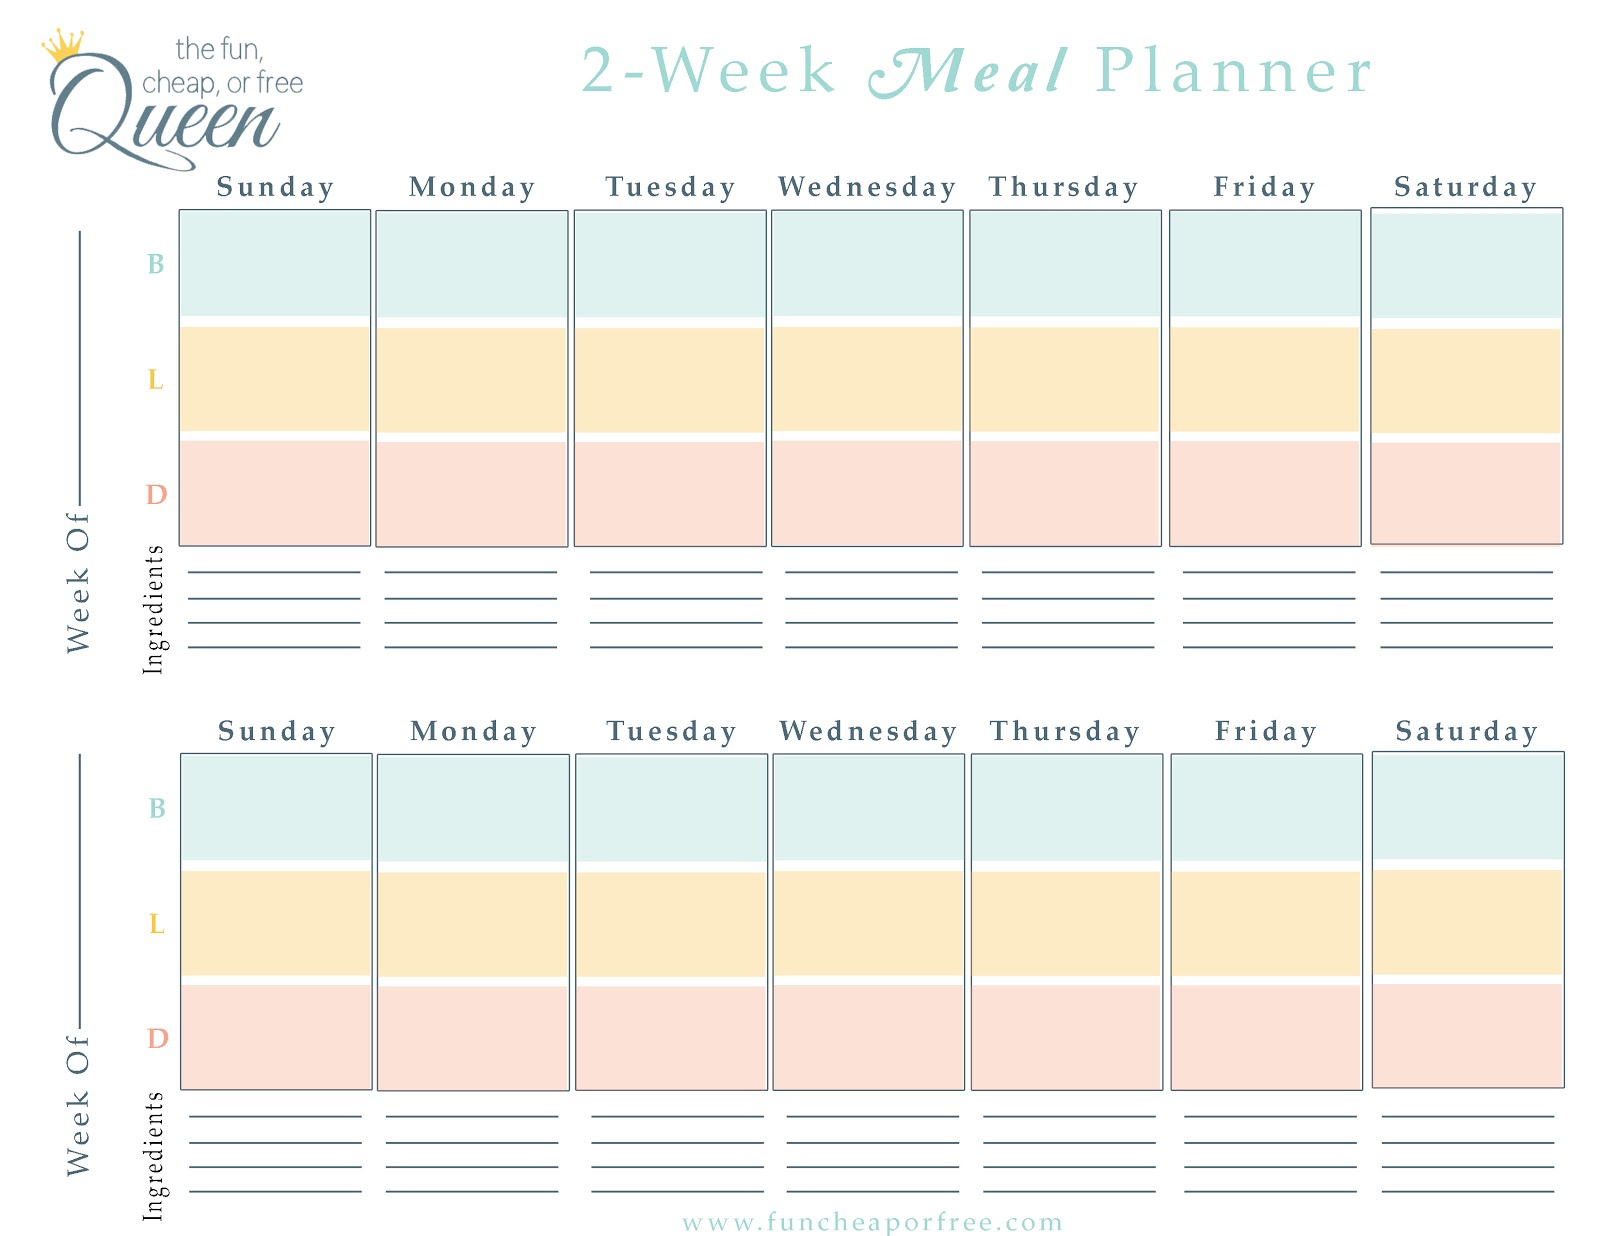 easy meal plan structure with free printables fun cheap or free